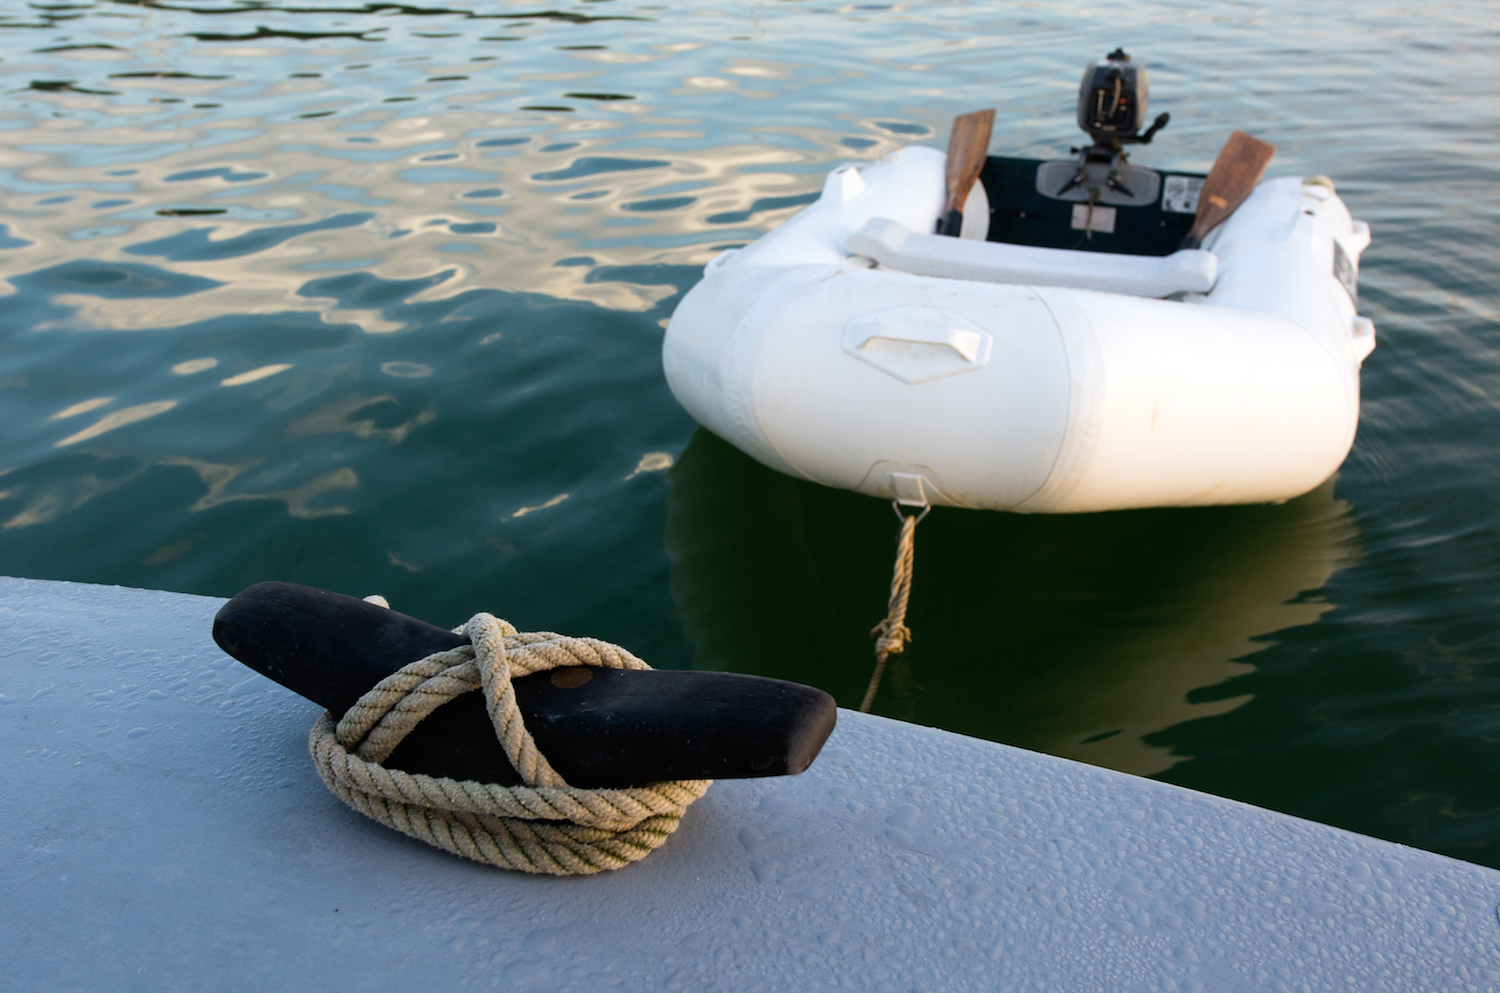 Towing a dinghy